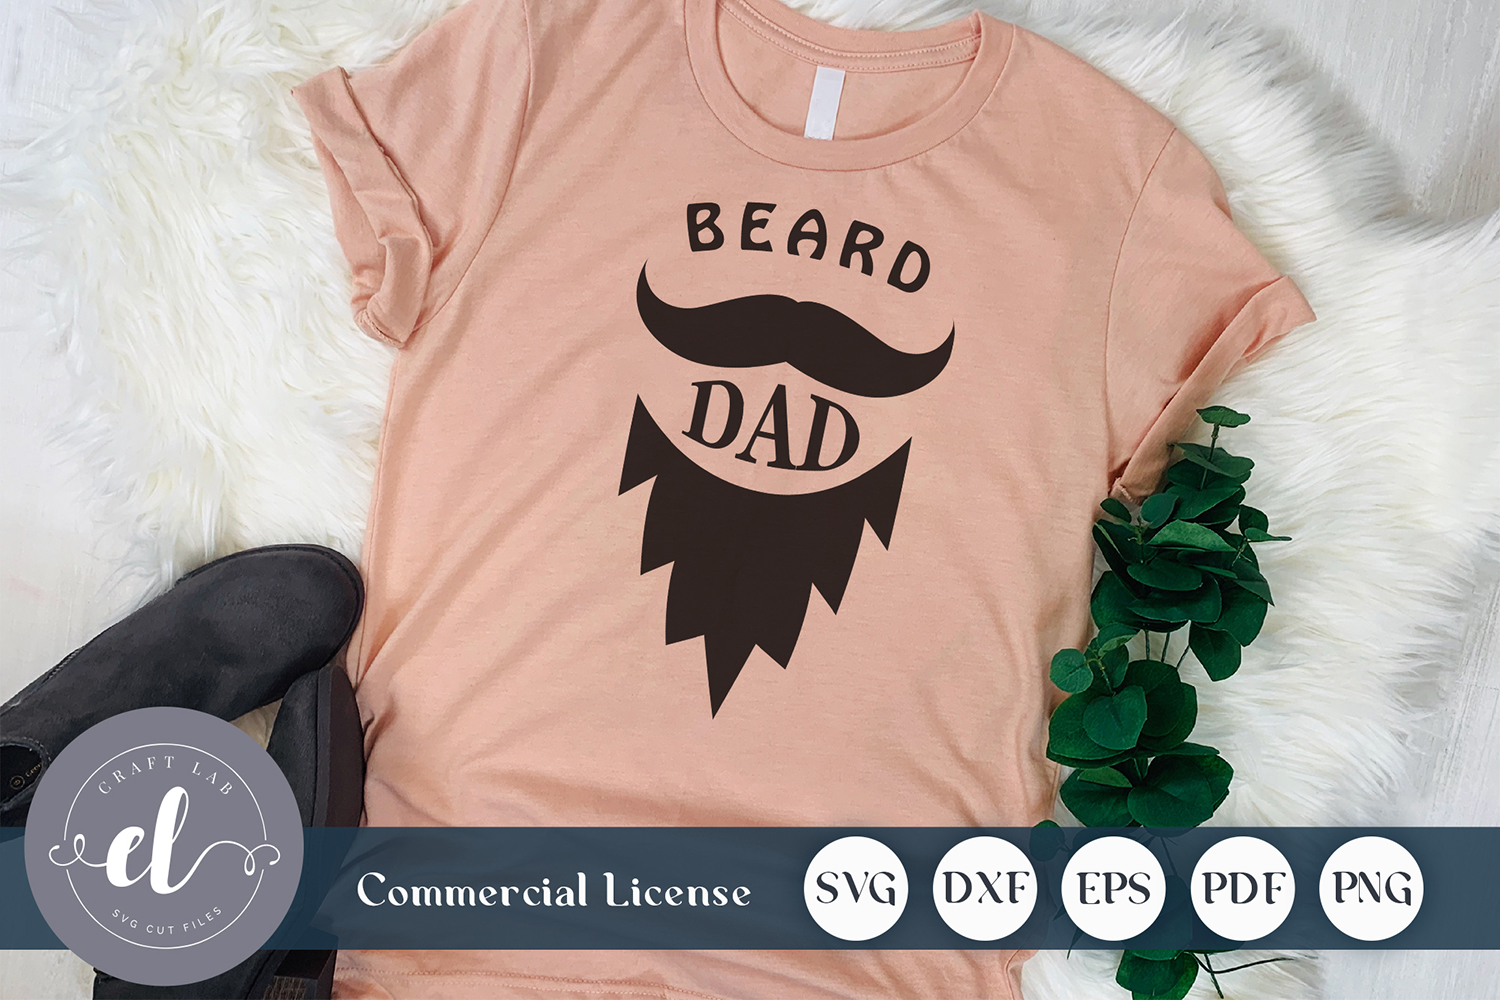 Download Free Beard Dad Graphic By Craftlabsvg Creative Fabrica for Cricut Explore, Silhouette and other cutting machines.